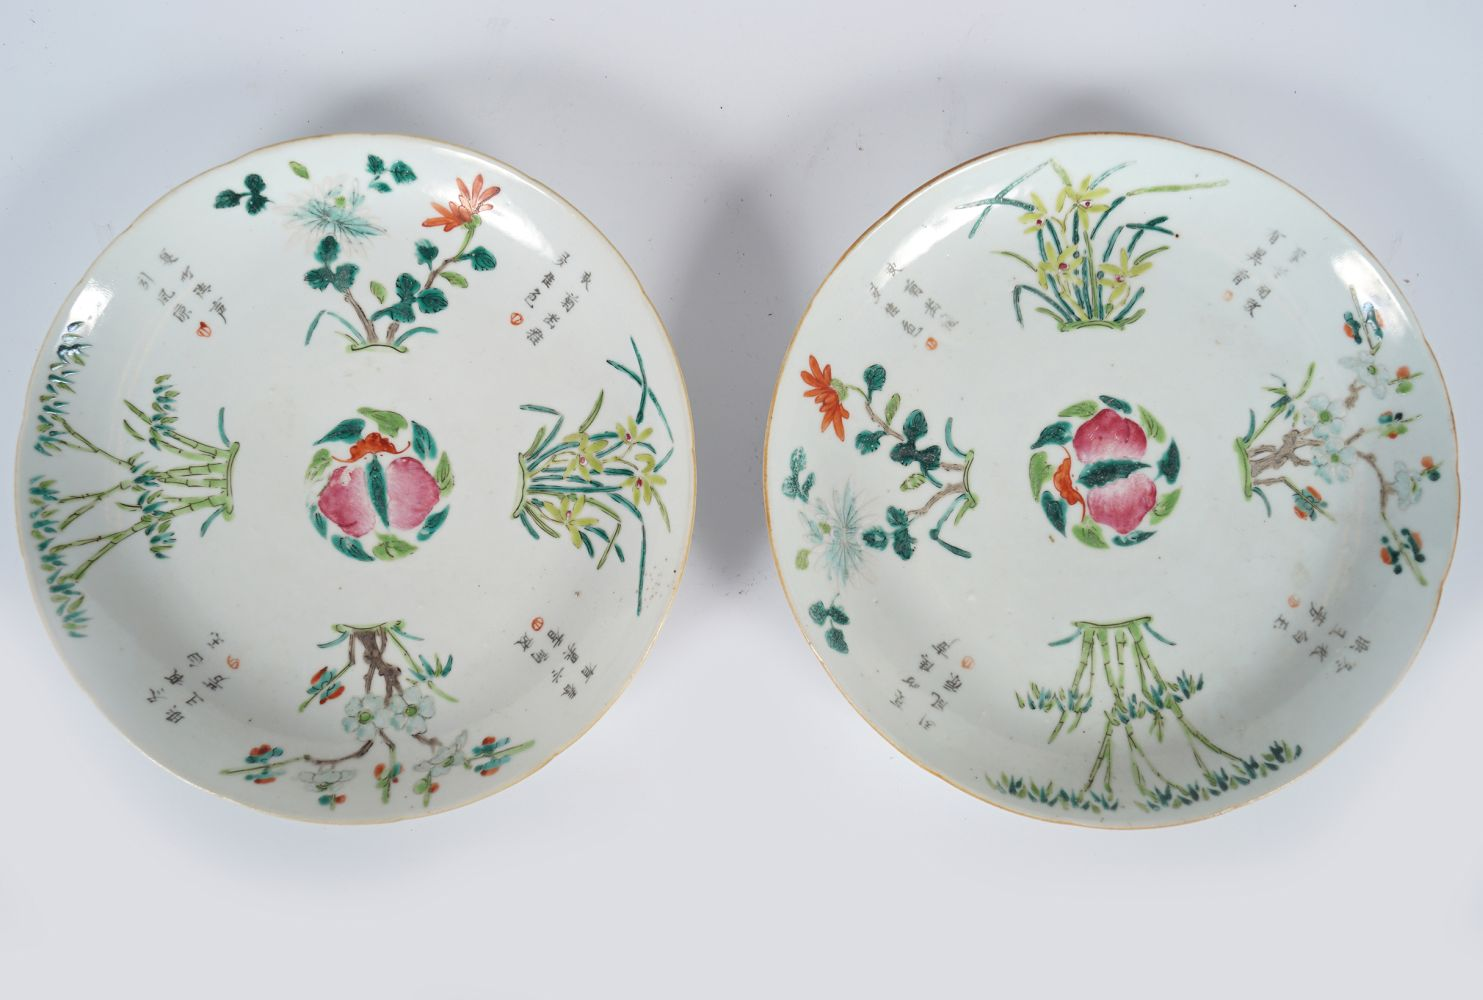 PAIR OF CHINESE CHENGHUA PLATES